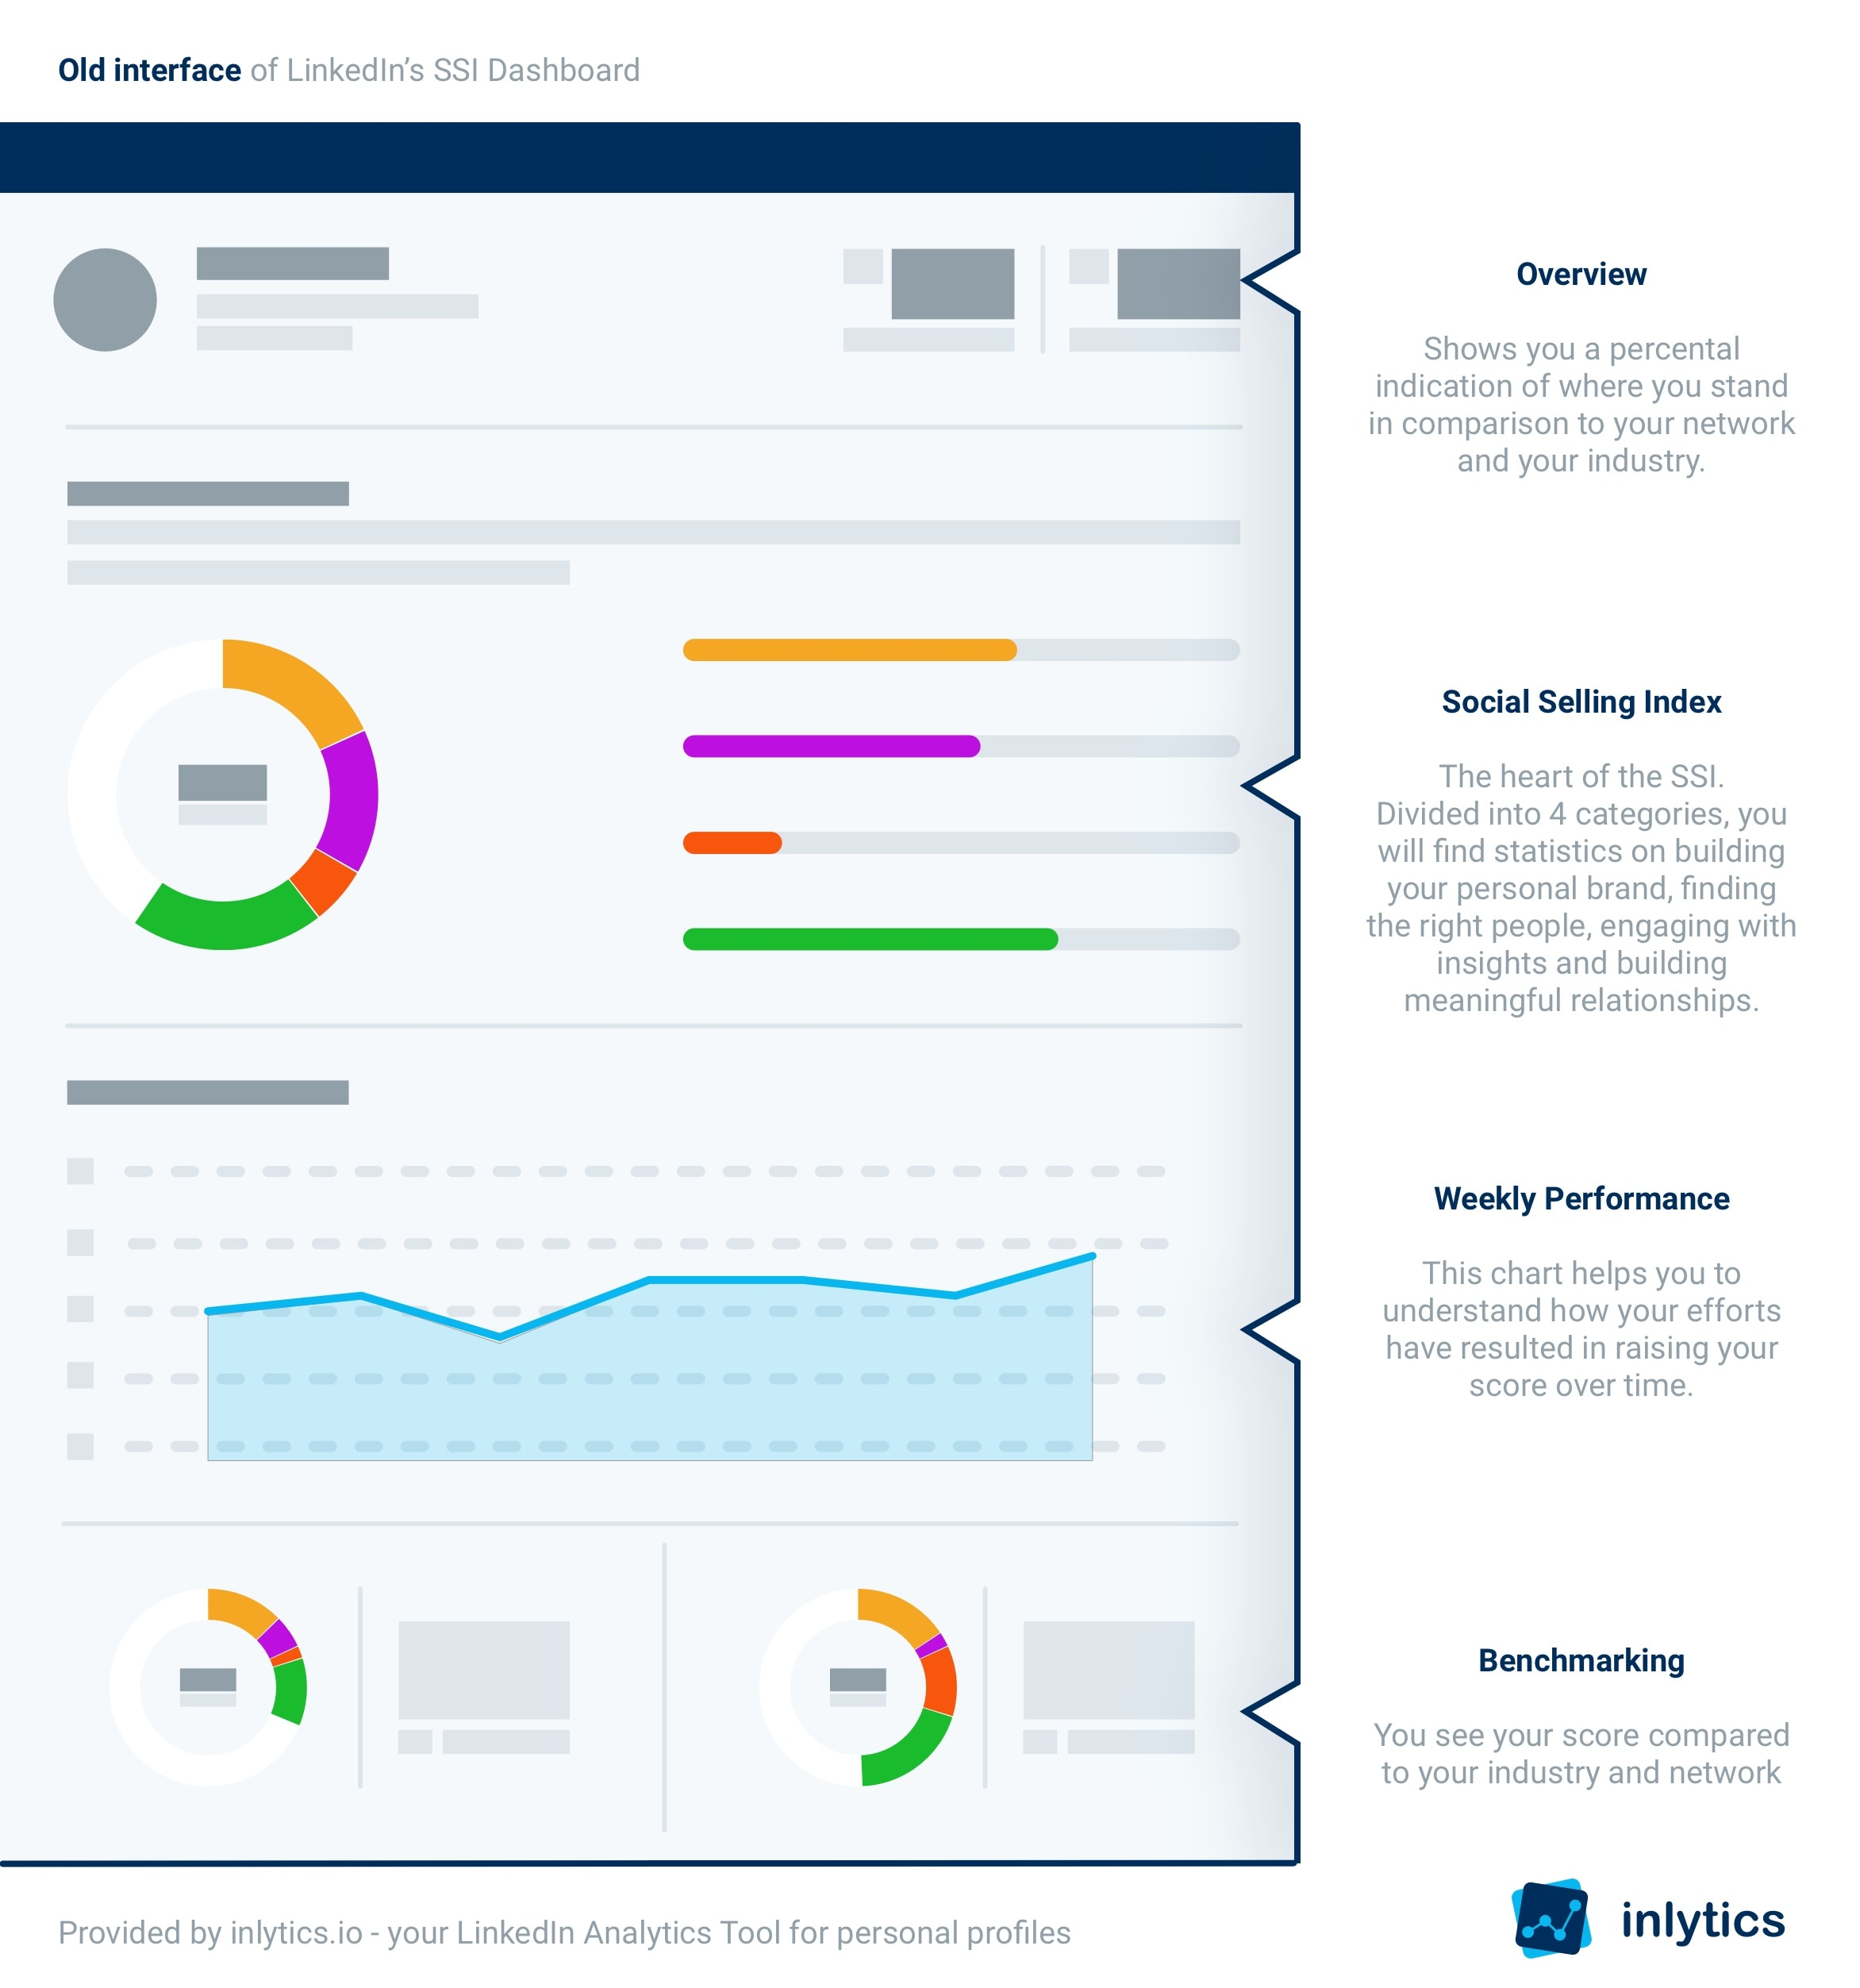 LinkedIns SSI Interface infographic old UI from 2019/2020